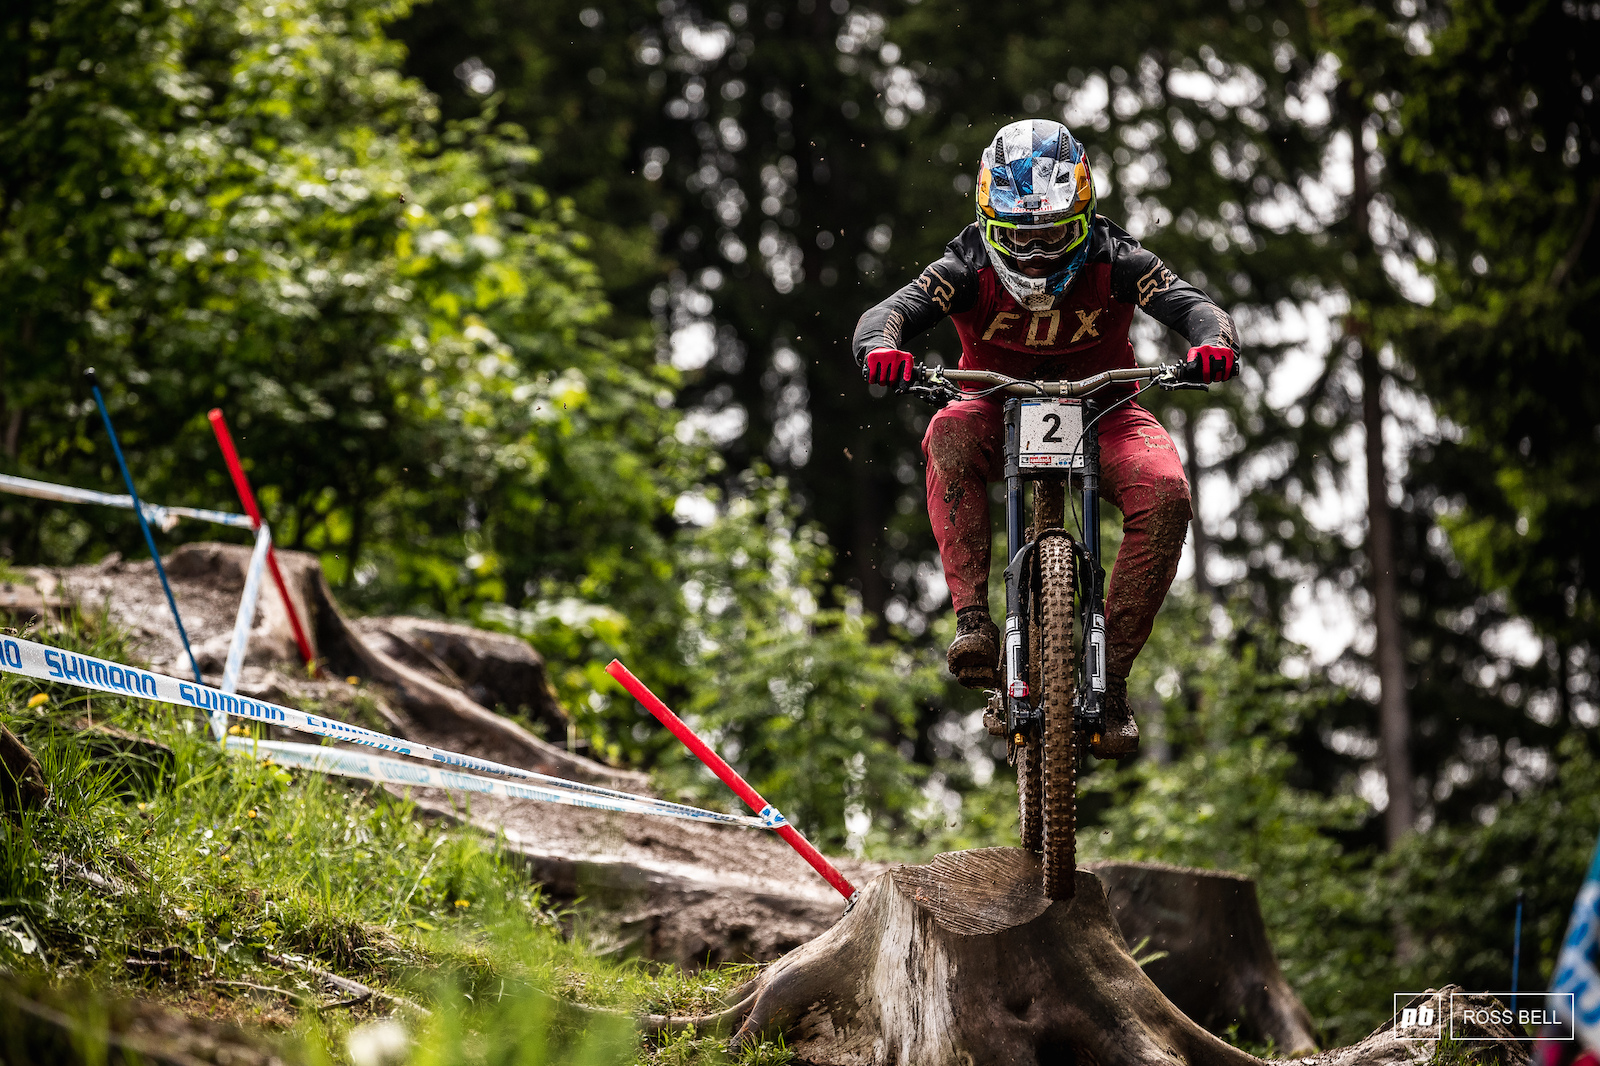 Loic Bruni had a slightly bumpy run-up to the opening World Cup round but it didn t seem to be holding him back on track.